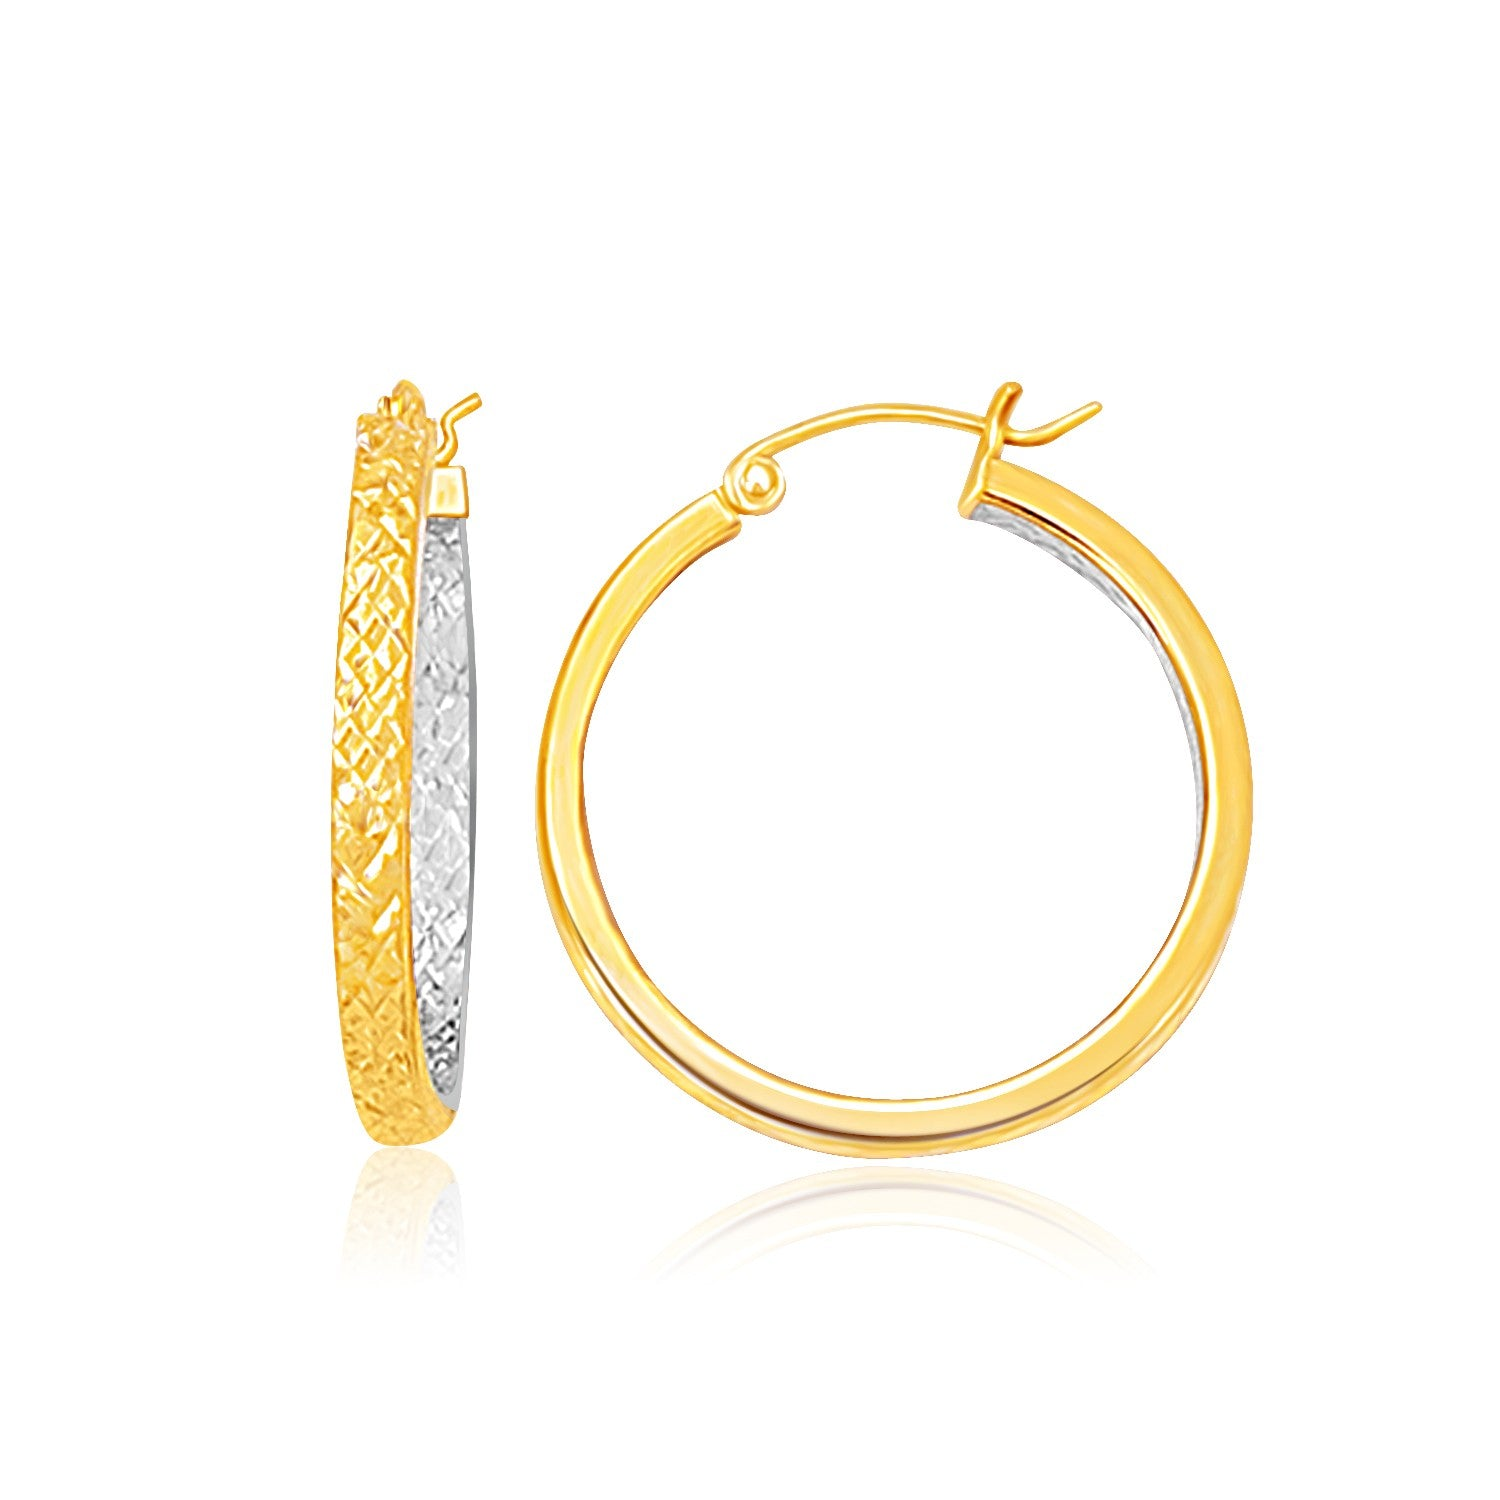 Modern Hollywood Style Classy Two-Tone Yellow and White Gold Medium Patterned Hoop Earrings